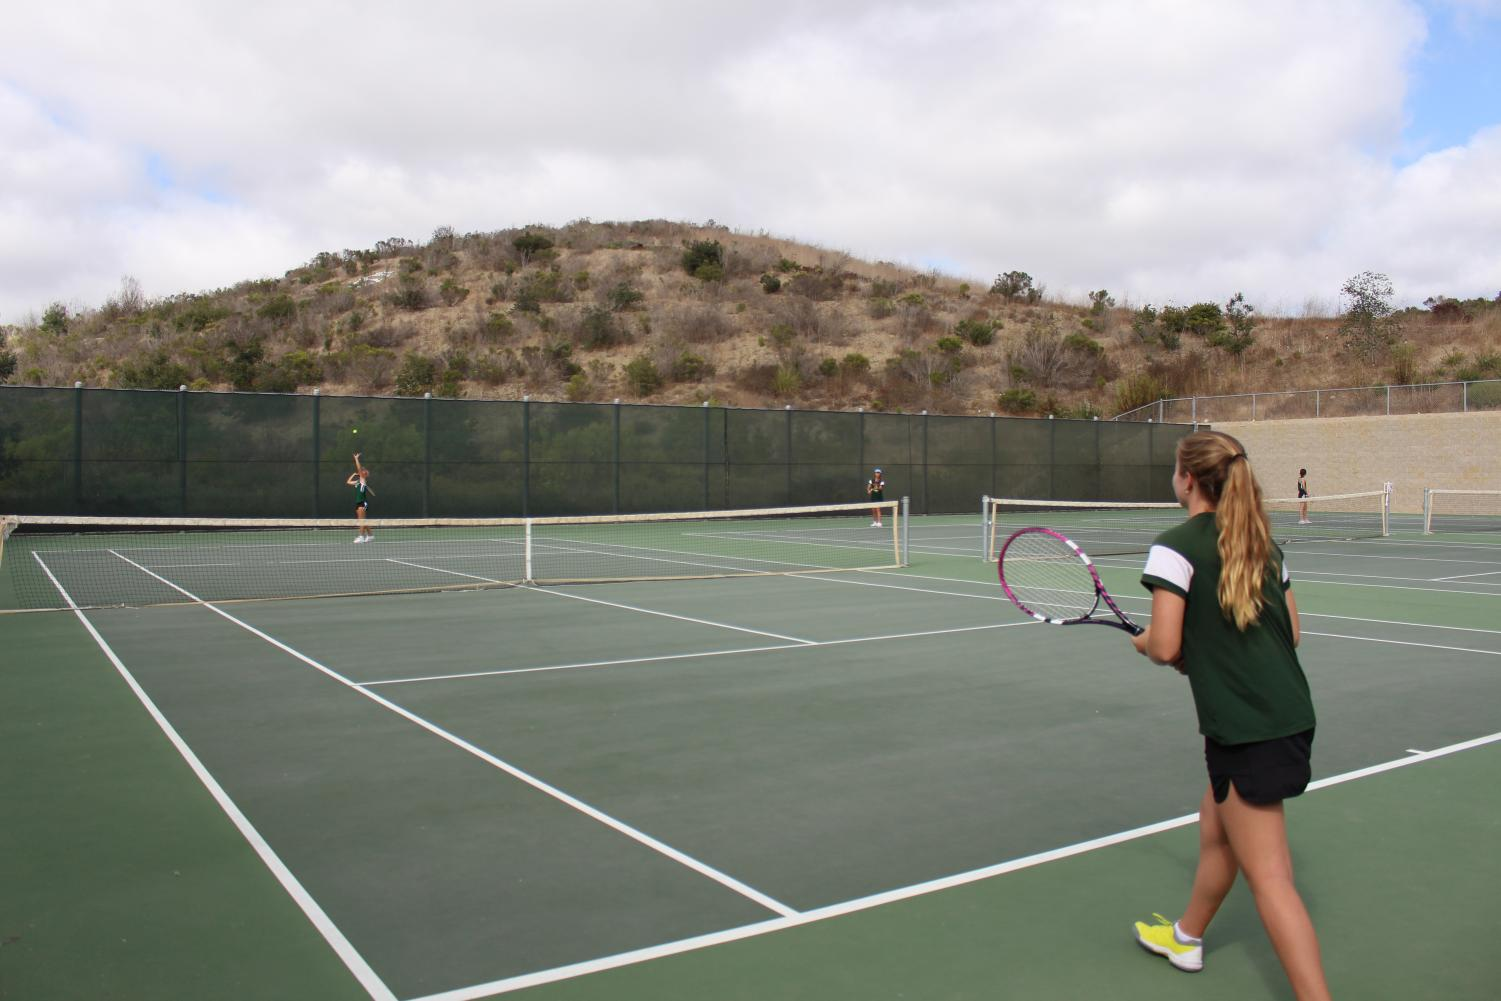 Junior+Jackie+Tucker+strides+her+way+forward+ready+to+challenge++Oceanside%27s+serve.+Girls+tennis+competed+against+Oceanside+High+School+on+Thursday%2C+Sept.+19.